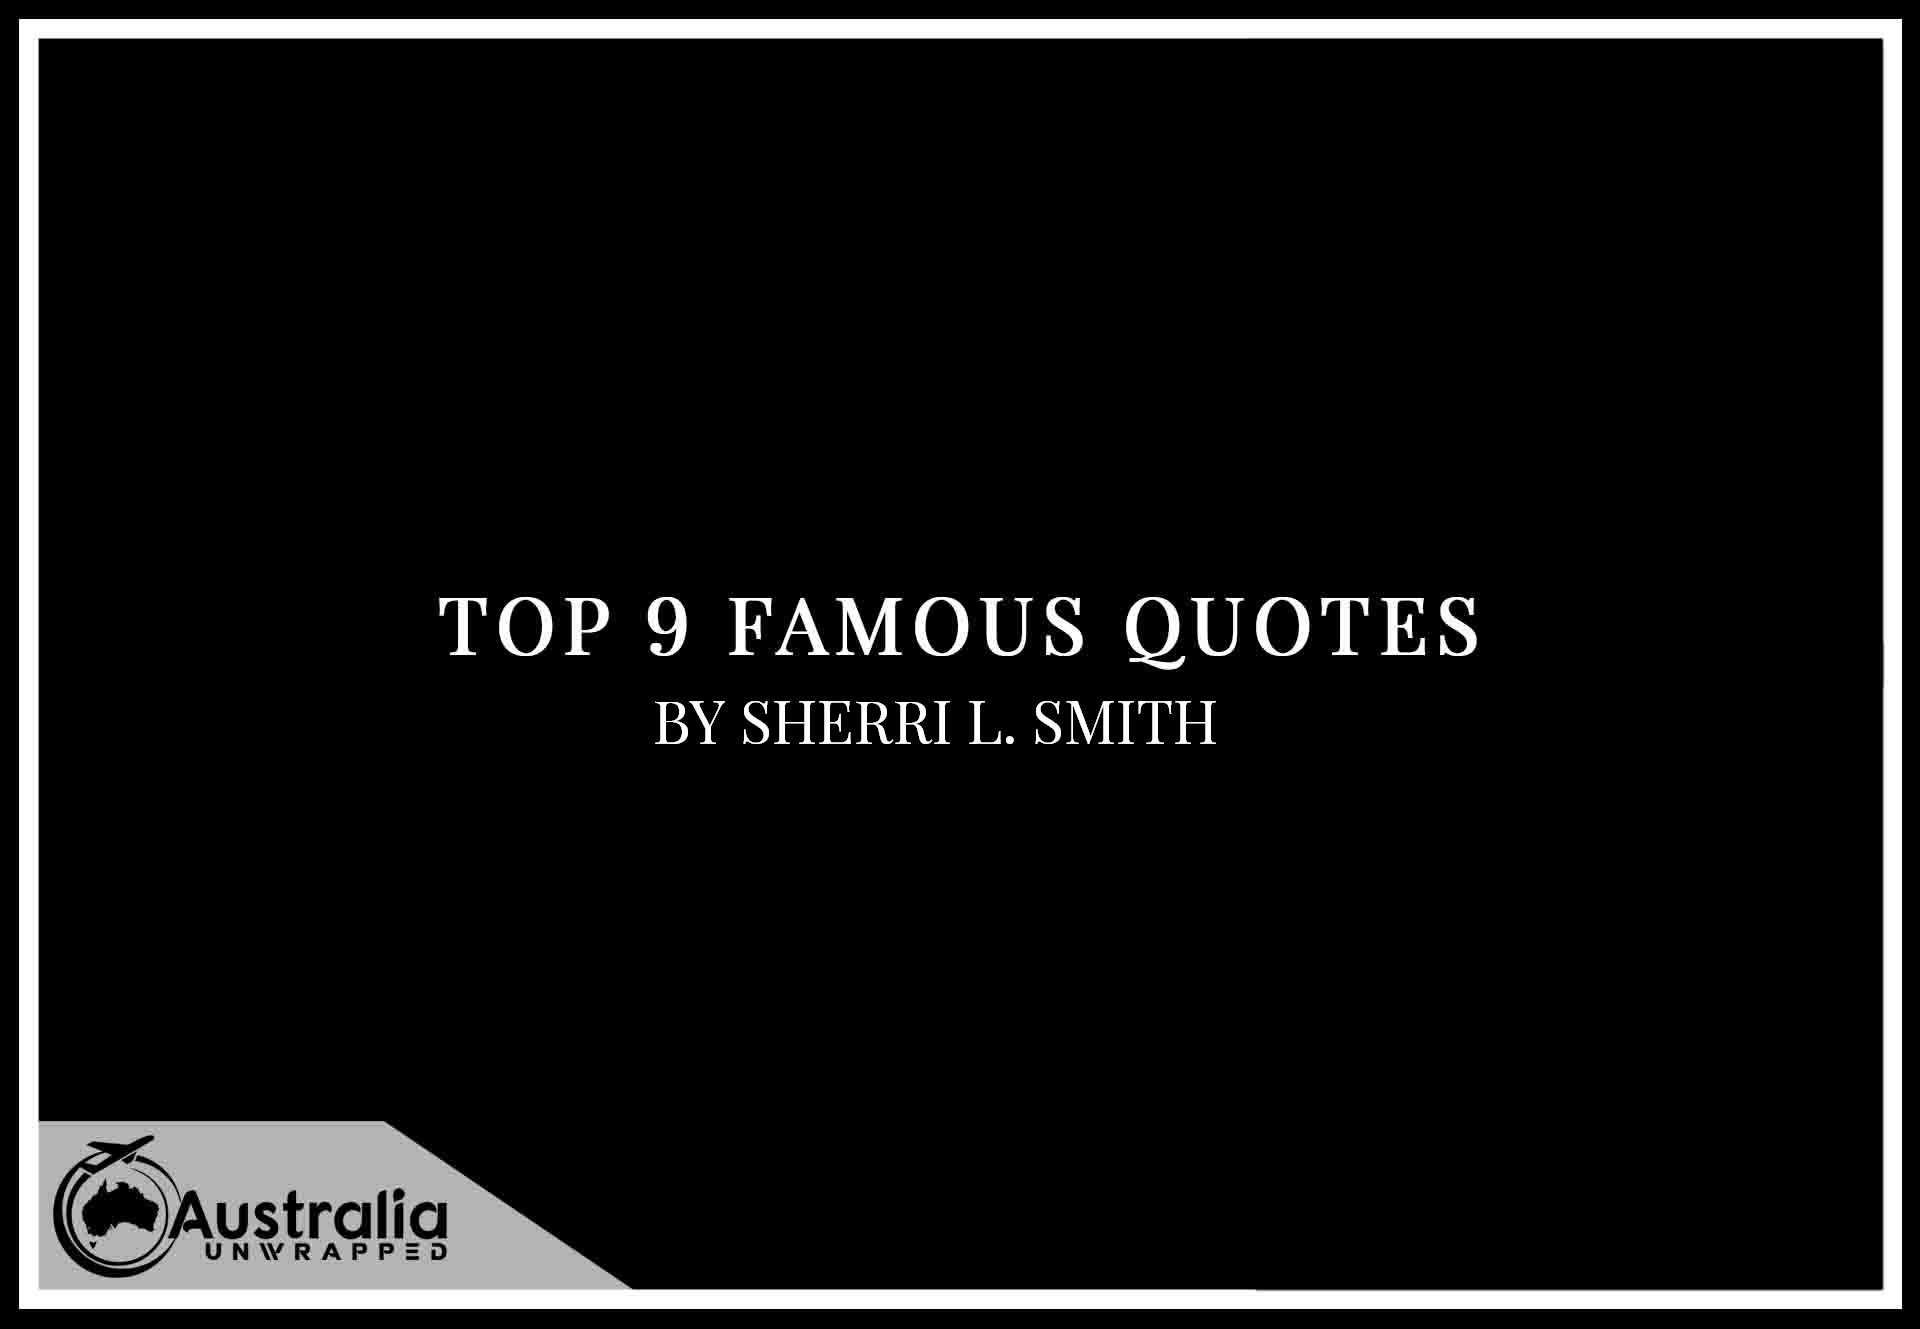 Top 9 Famous Quotes by Author Sherri L. Smith